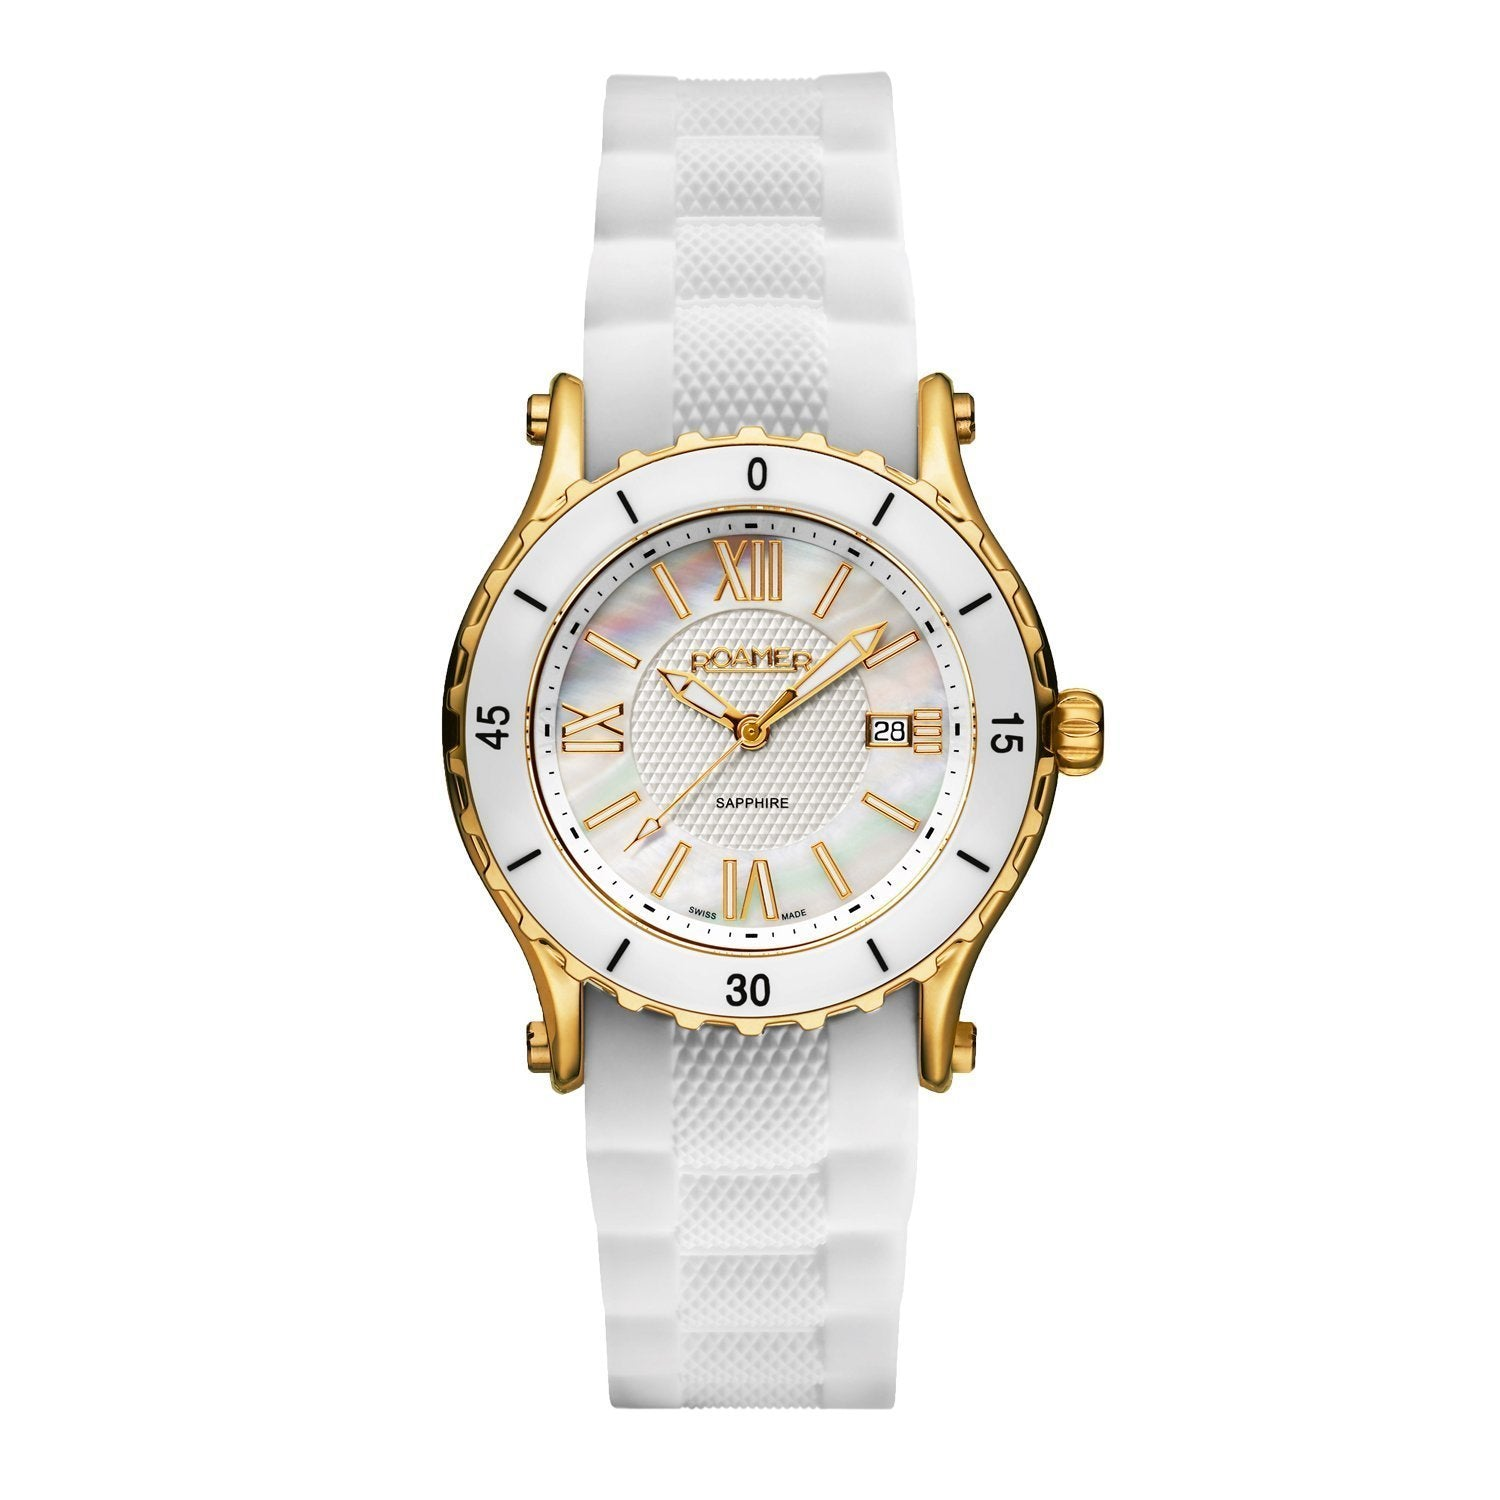 Roamer Ceraline Pure Date White - Watches & Crystals